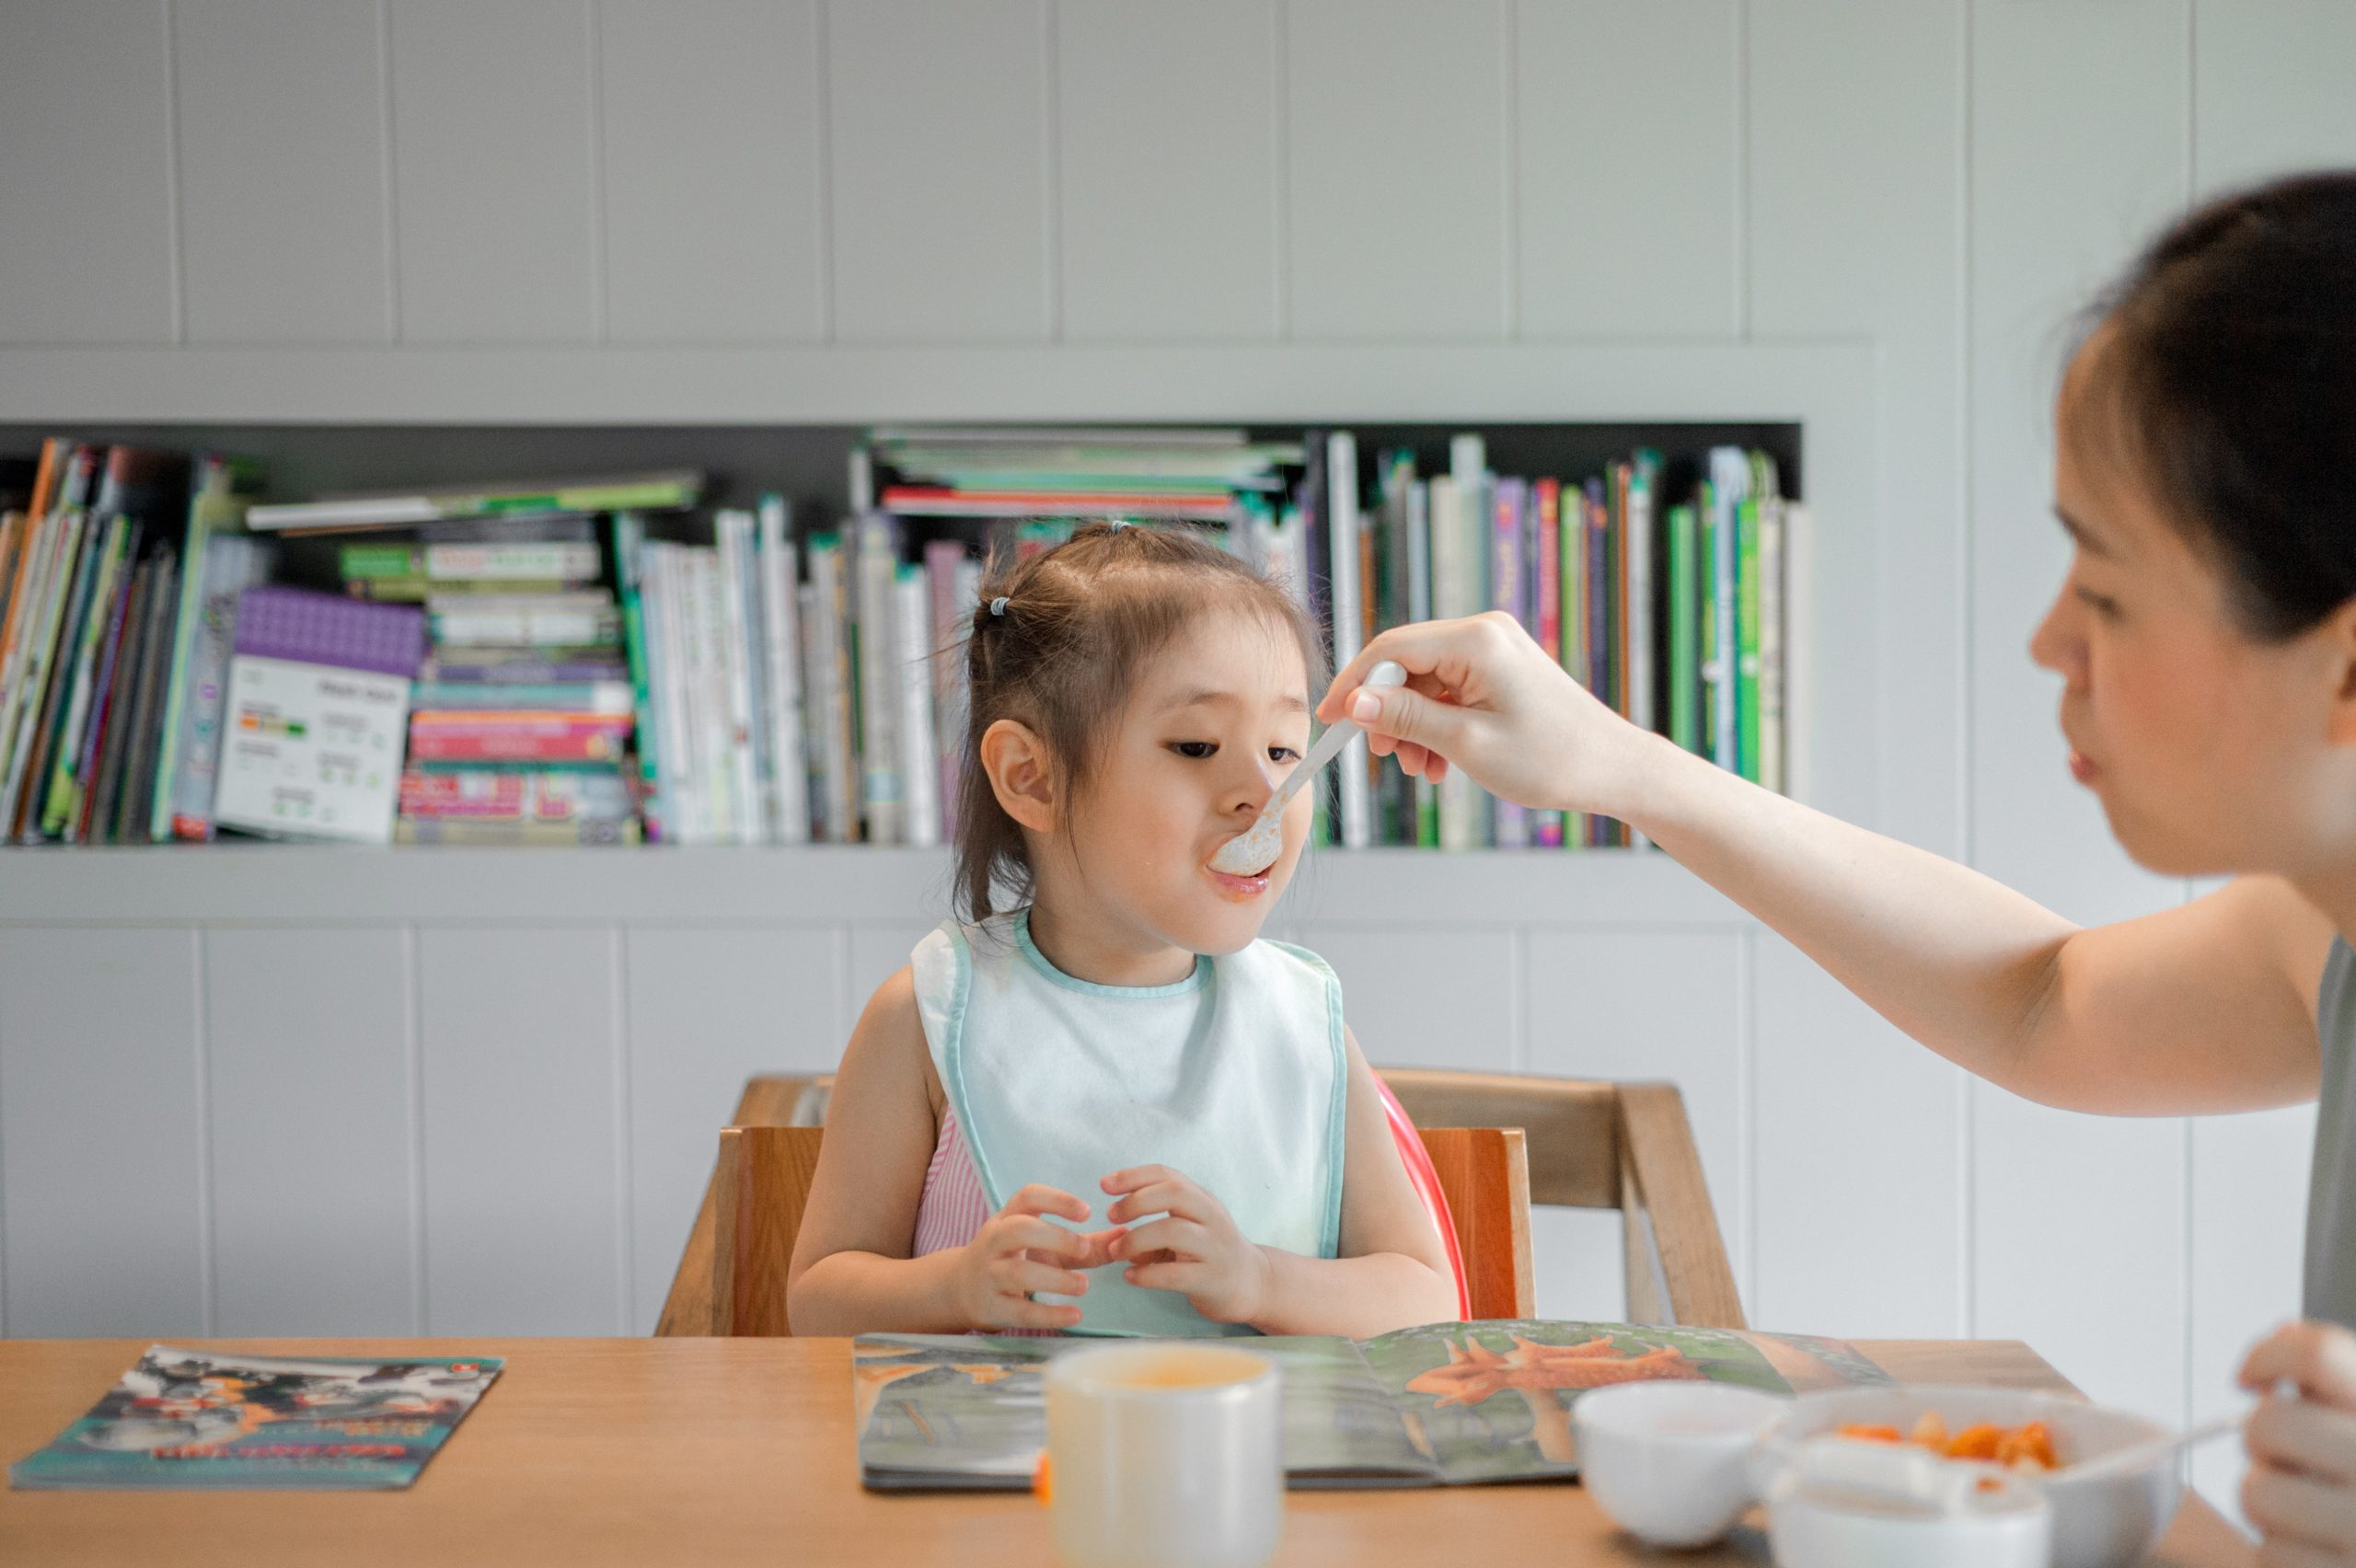 A toddler being fed